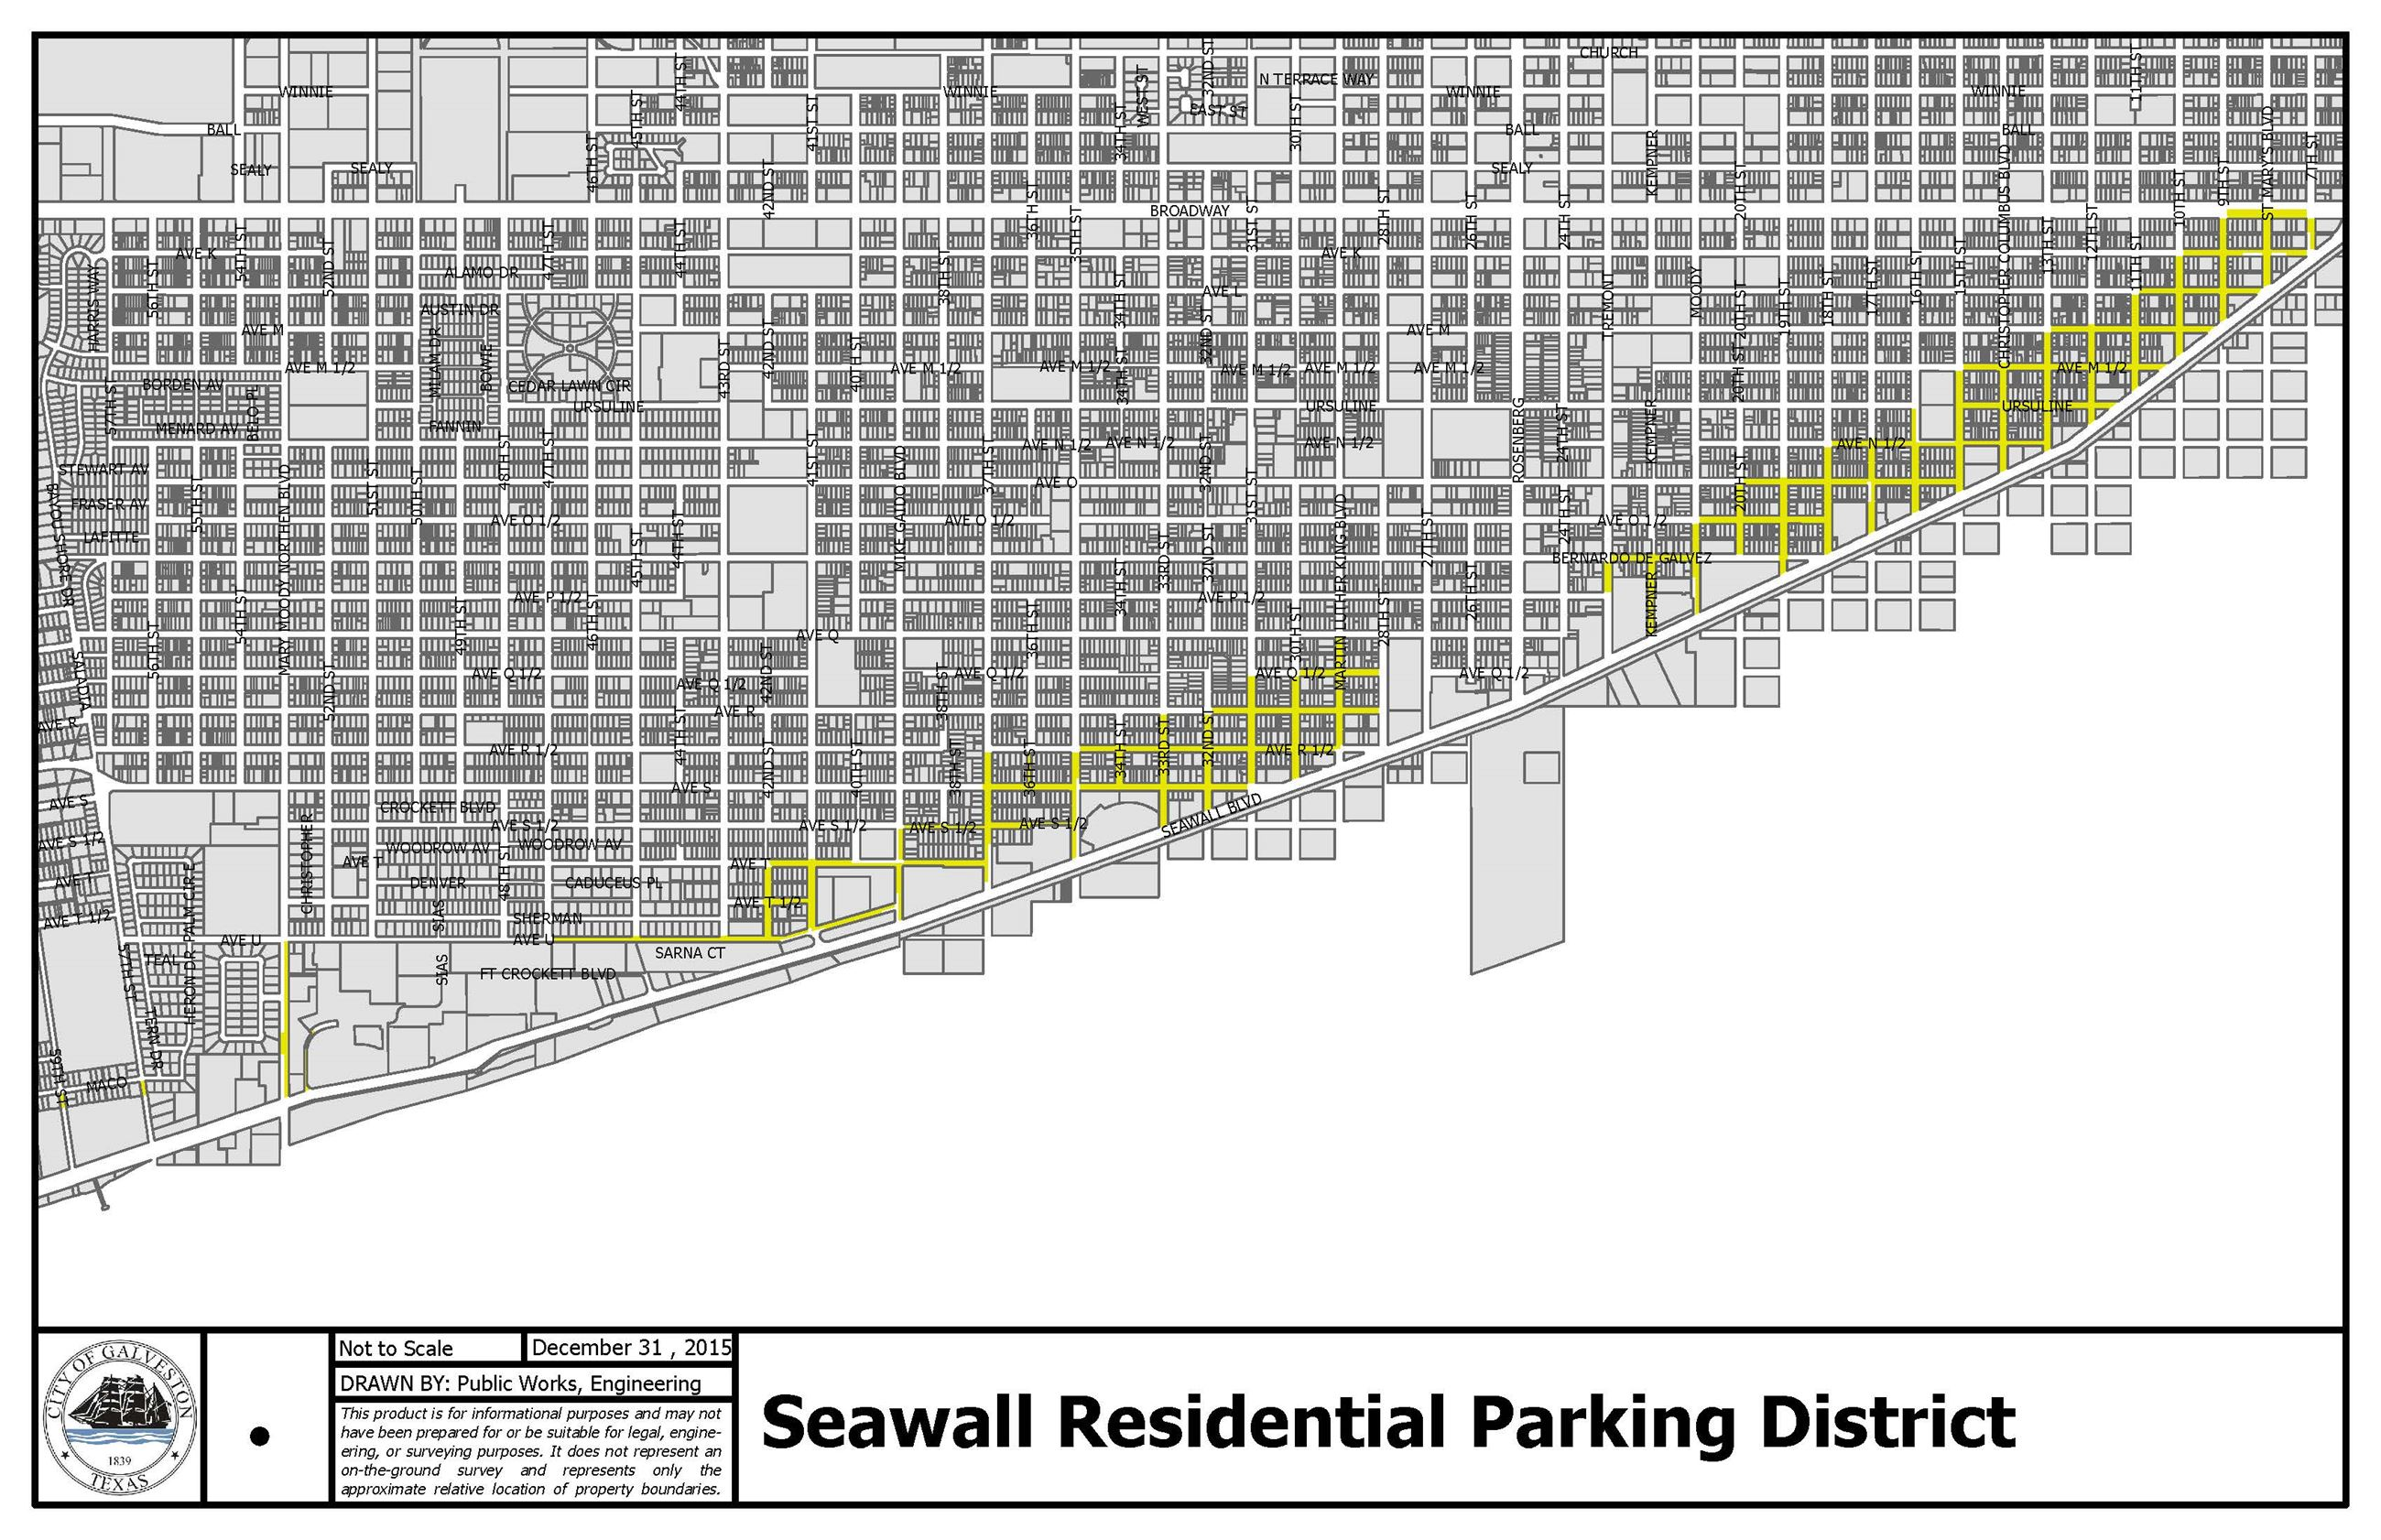 Seawall Res Parking Dist 010516